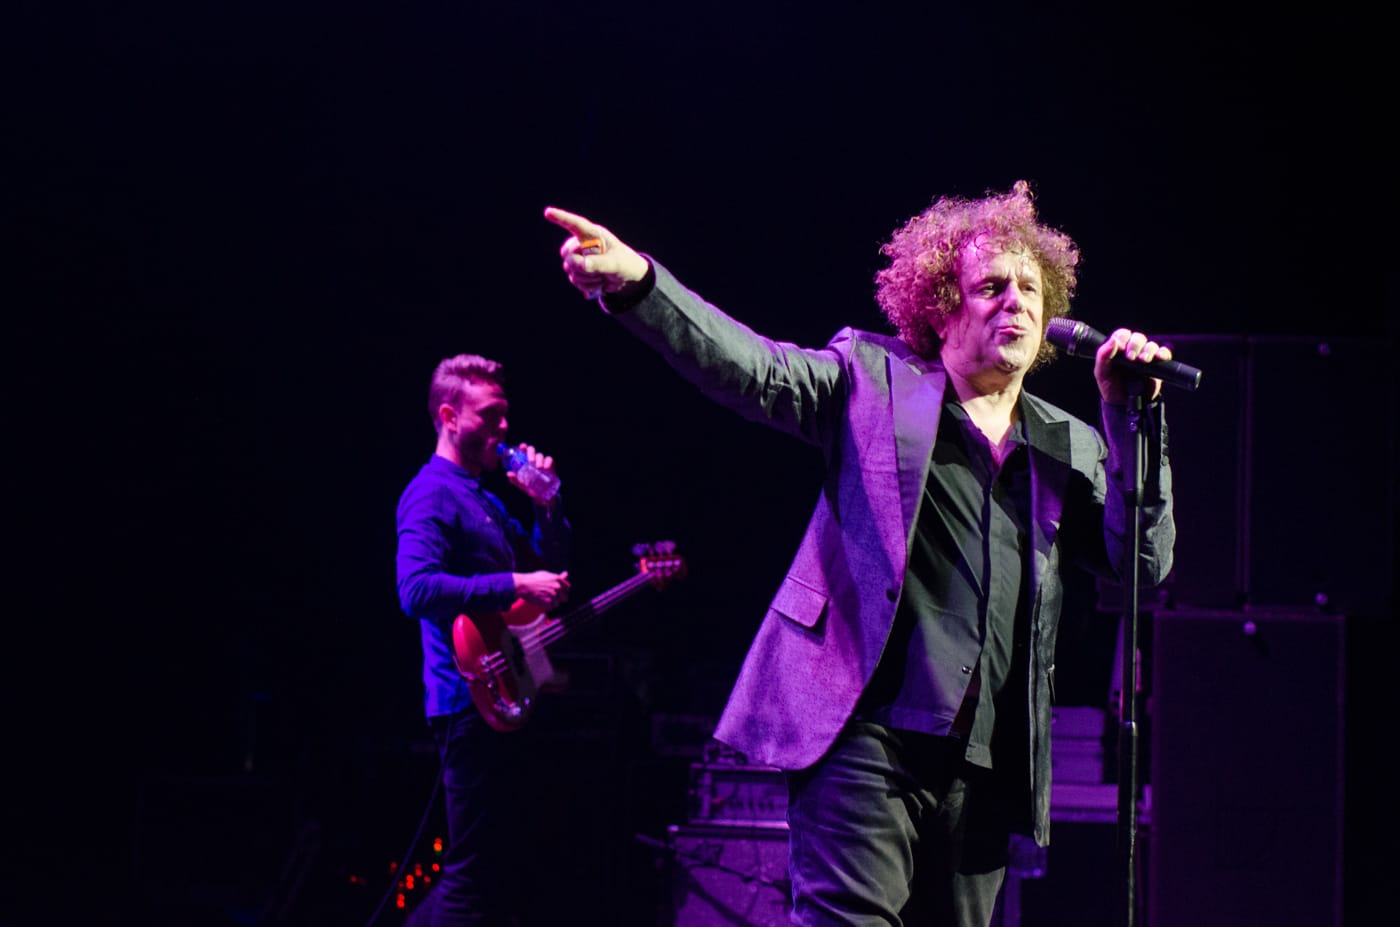 Leo Sayer at Bord Gais Energy Theatre by Sean Smyth (16-10-15) (109 of 129)